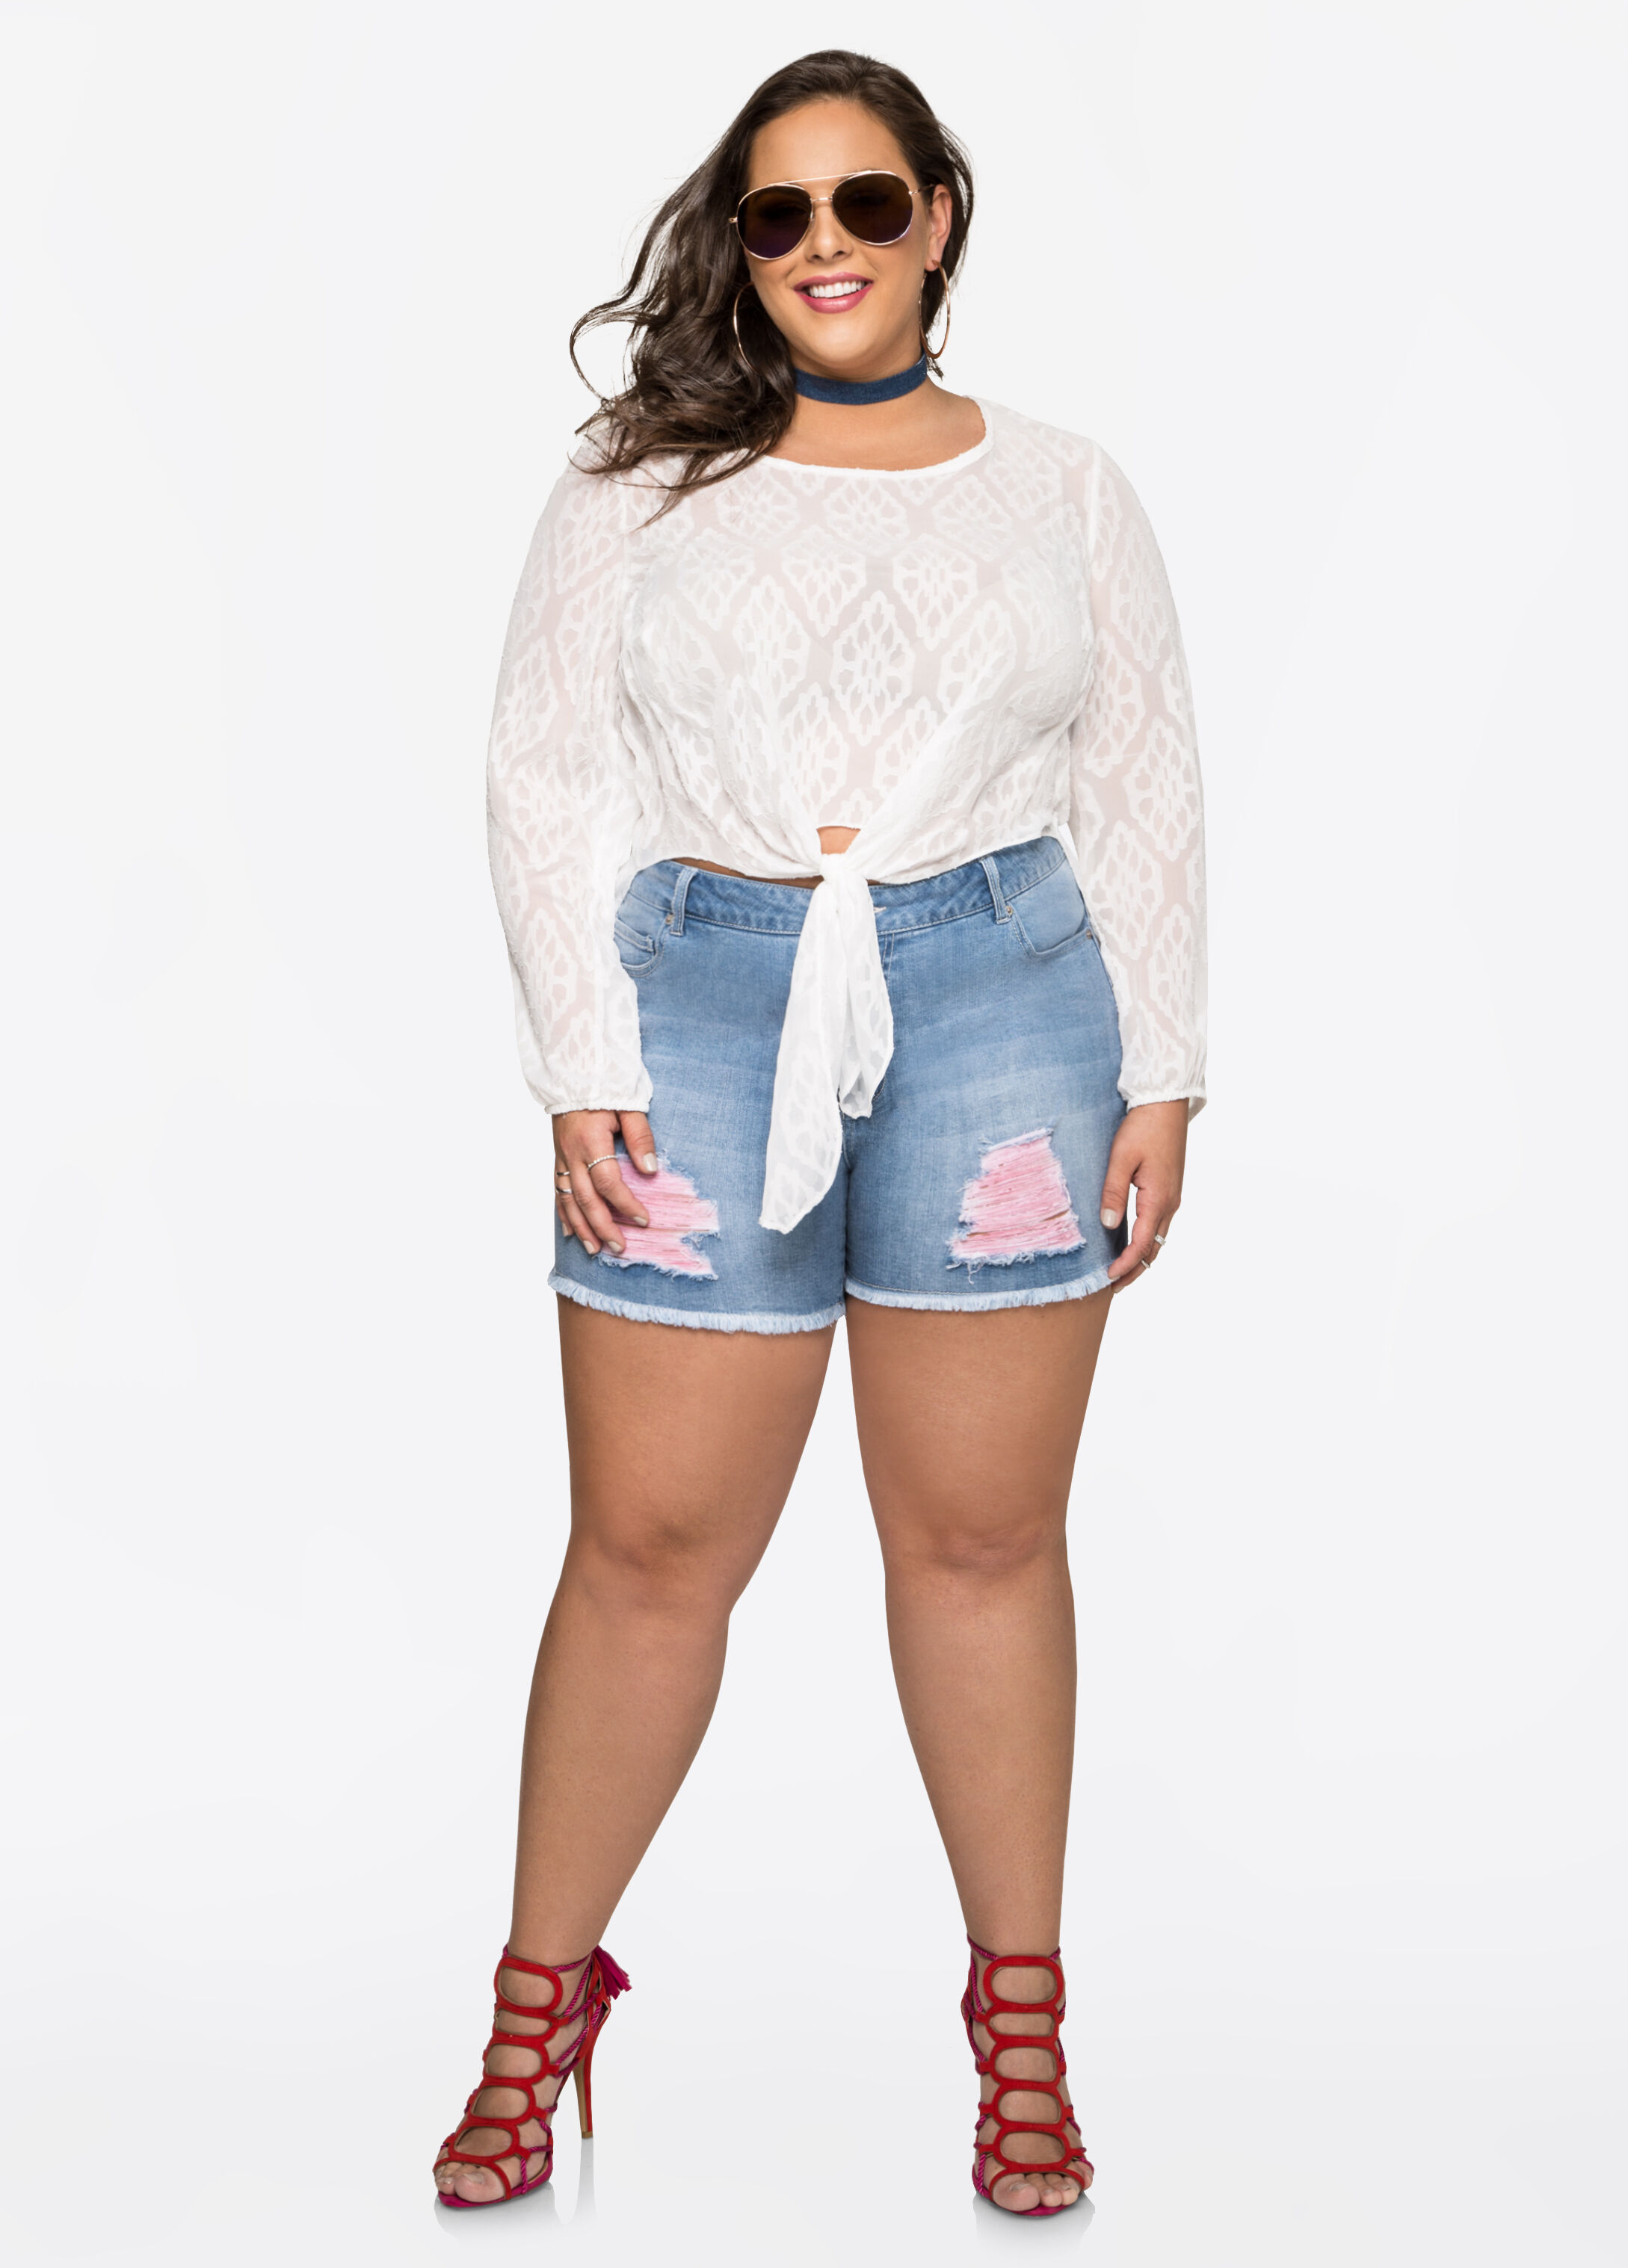 plus size jean shorts - pink thread ripped jean shorts